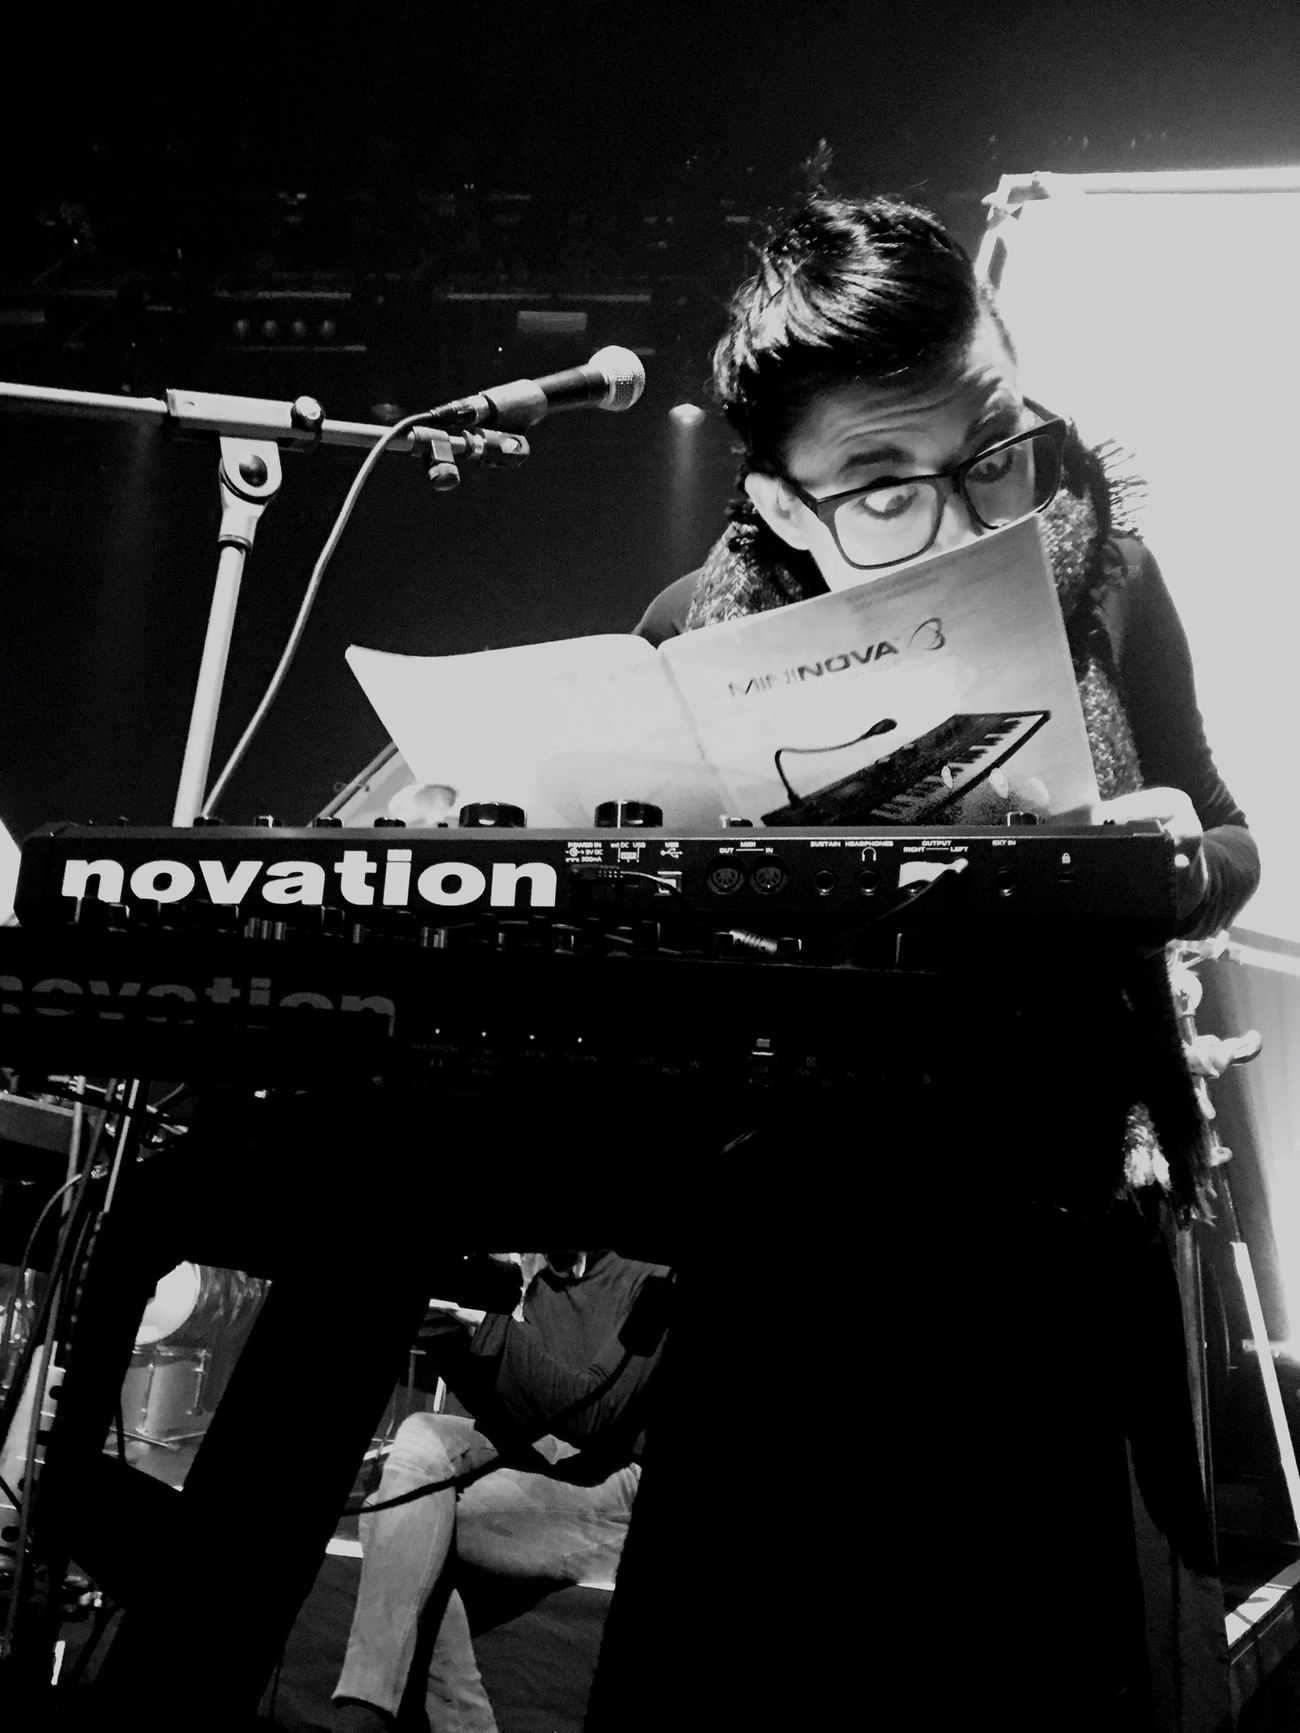 The Madame with lovely New Toys Novation Metanoiatour